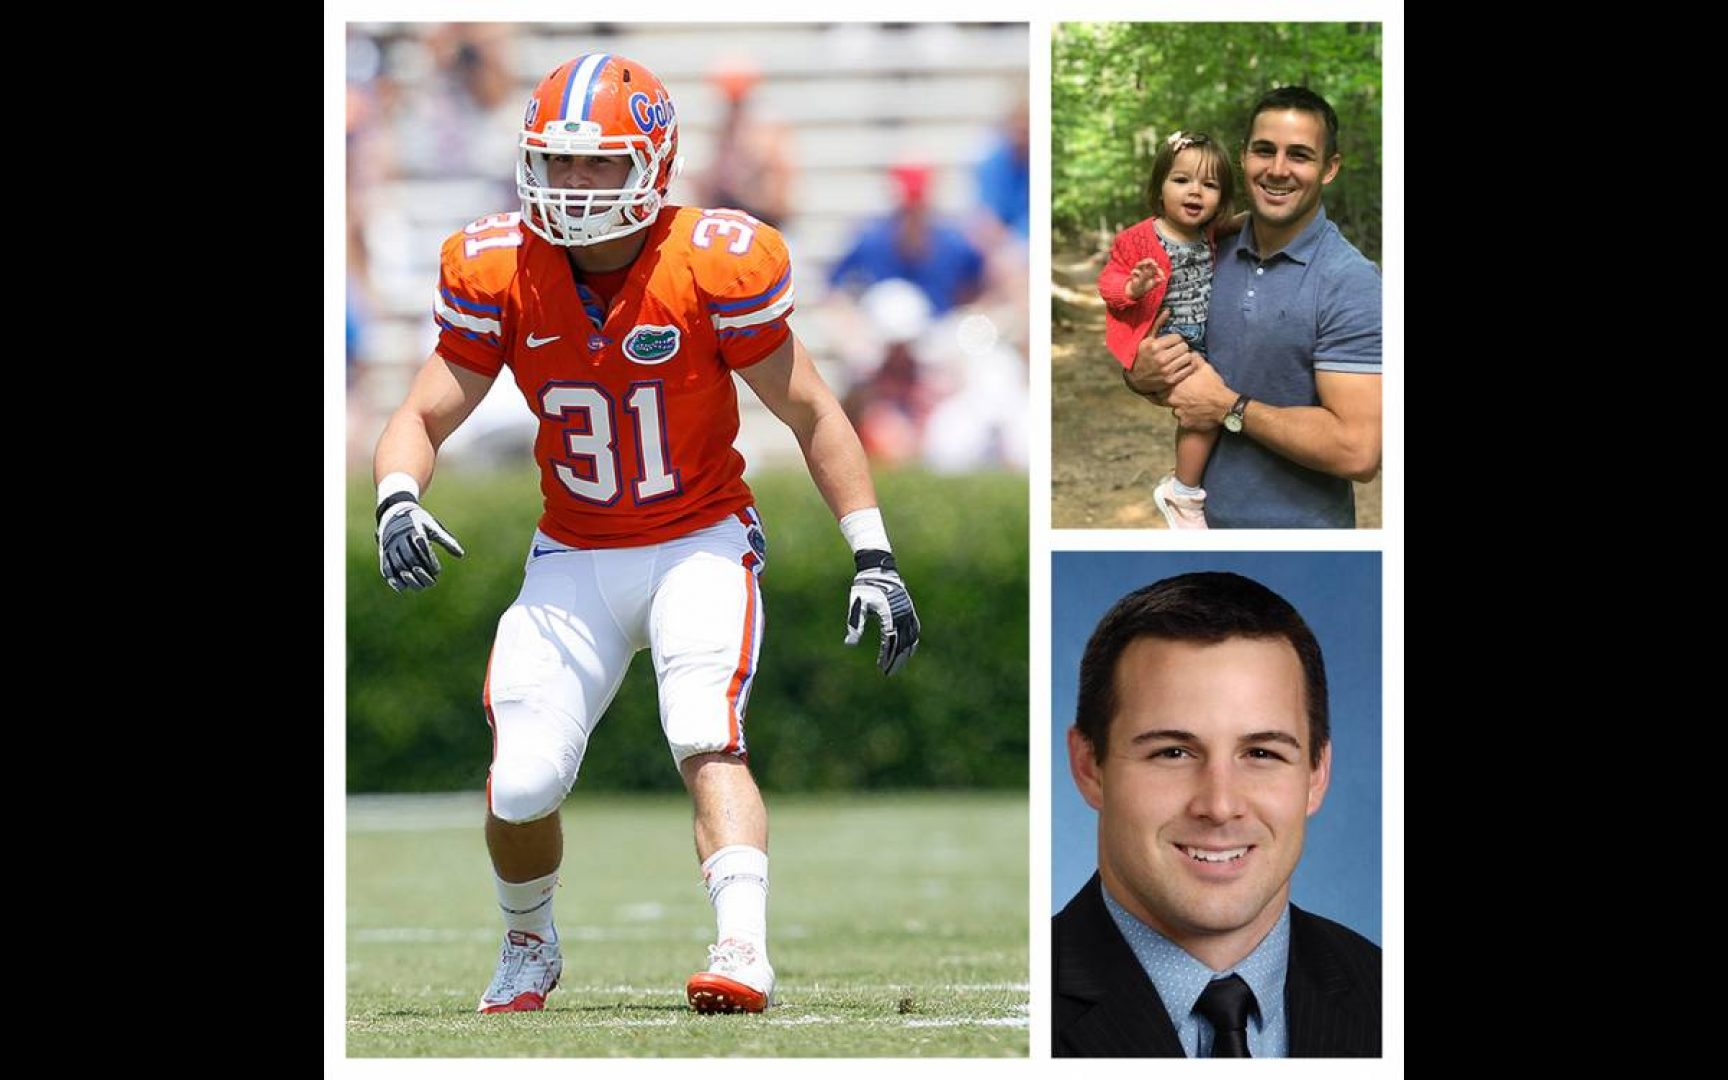 Large photo on the left of Brian Biada in his orange Gator Football uniform on the football field; top-right image of Brian Biada and his daughter'; bottom-right image a portrait of Brian Biada